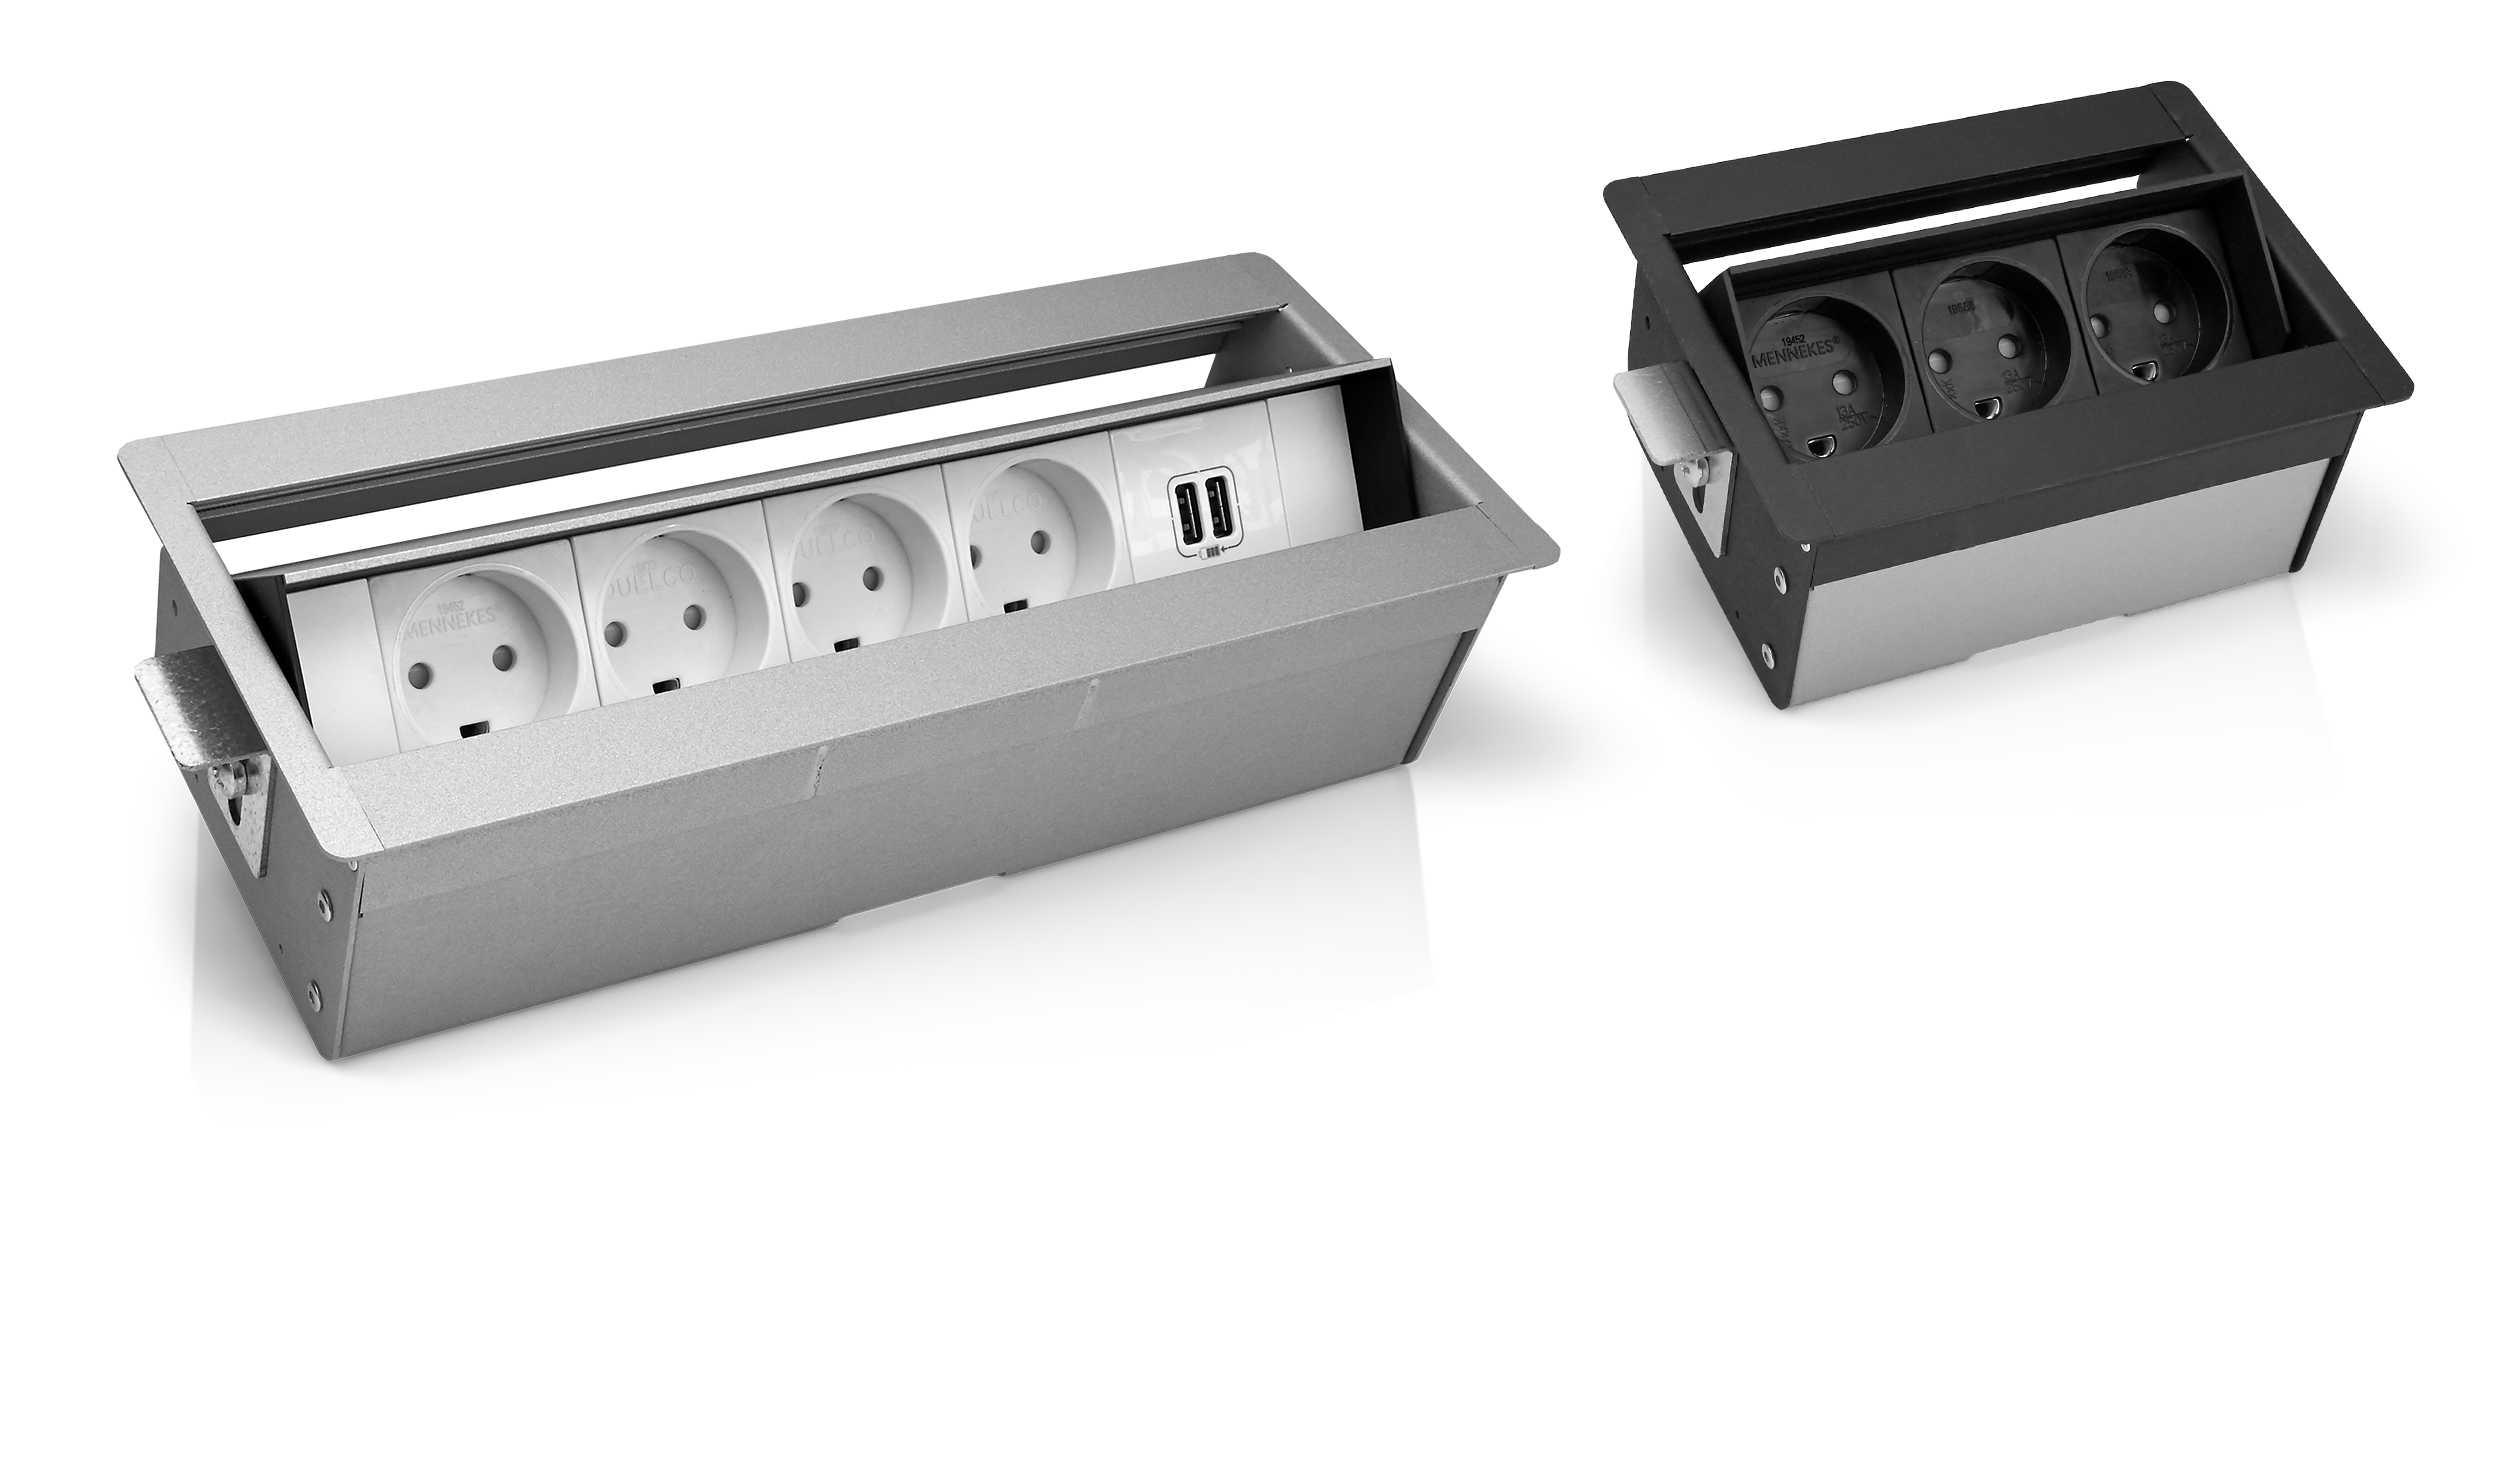 Office Solutions Duelco Frame With Components And Electric Wiring Isolated On White Reliable Power Data Connections Are A Must For Every Workplace At Desks Meeting Tables Reception Or In The Lounge